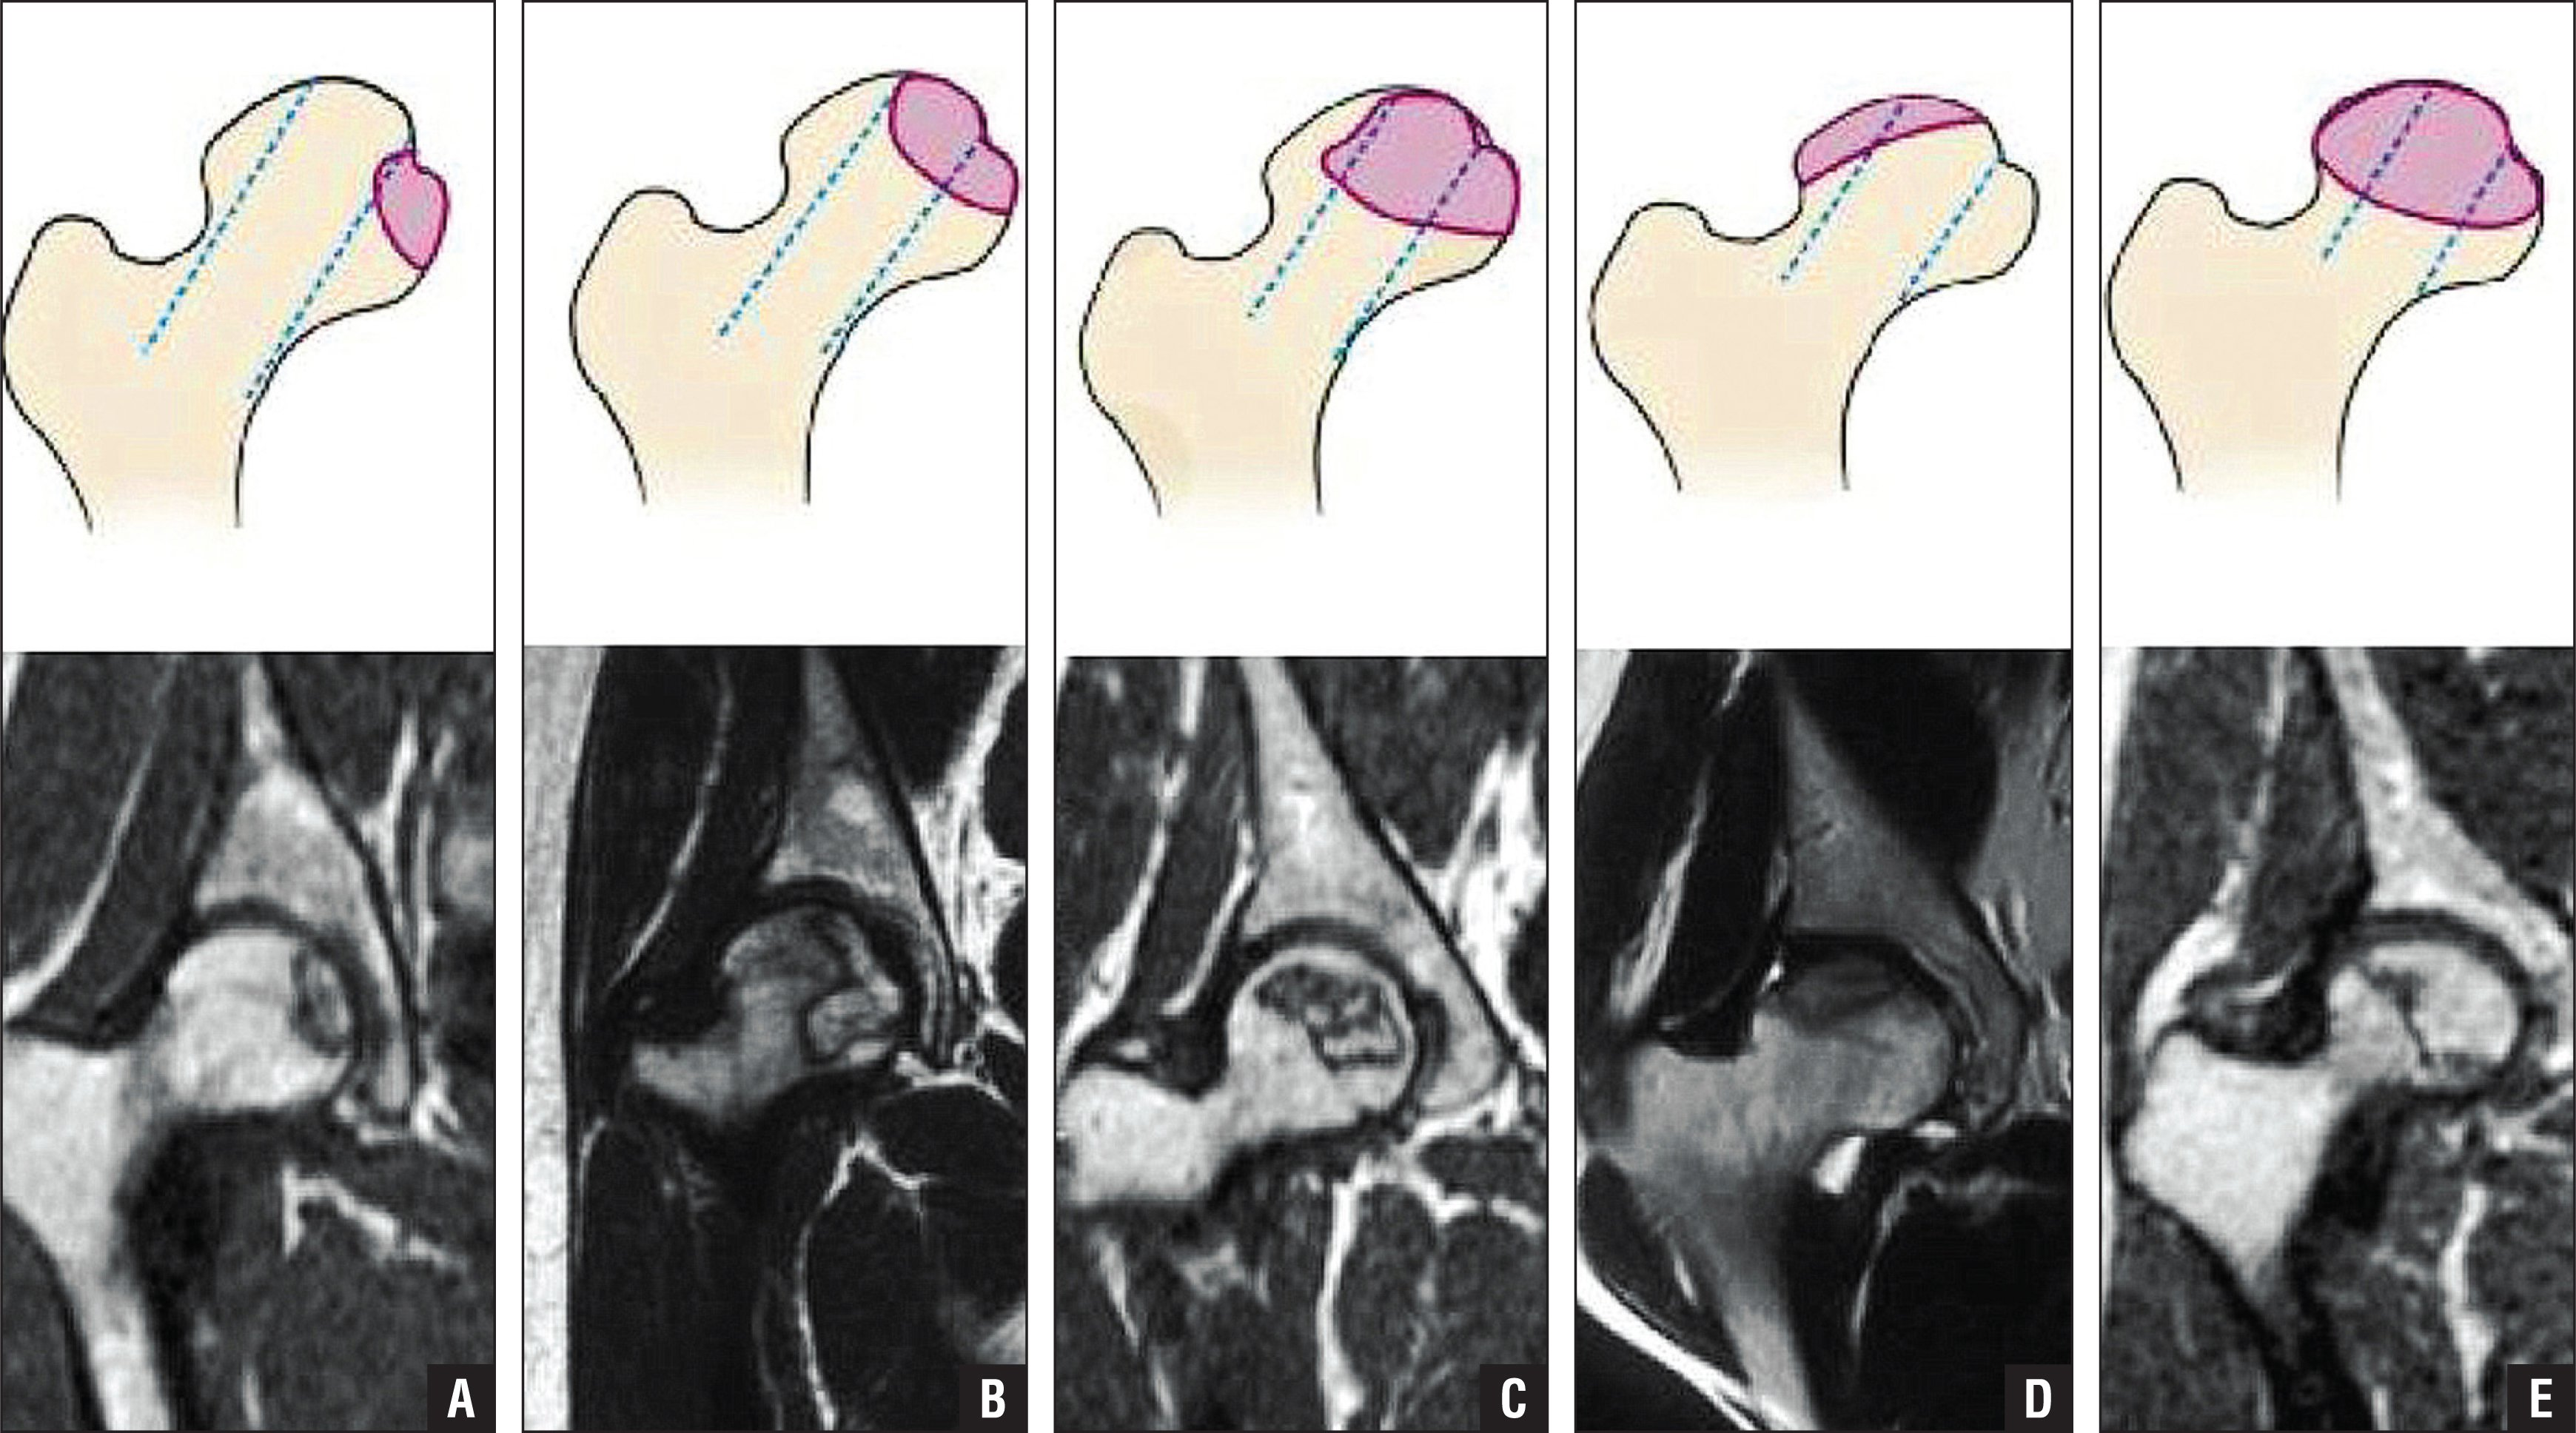 Schematic diagrams (top) and magnetic resonance images (bottom) of the China-Japan Friendship Hospital classification of osteonecrosis of the femoral head based on the 3 pillars. Type M: Necrosis involves the medial pillar (A). Type C: Necrosis involves the medial and central pillars (B). Type L1: Necrosis involves all 3 pillars, but the lateral pillar is partially preserved (C). Type L2: Necrosis involves the entire lateral pillar and part of the central pillar (D). Type L3: Necrosis involves all 3 pillars, including the cortical bone and marrow (E).